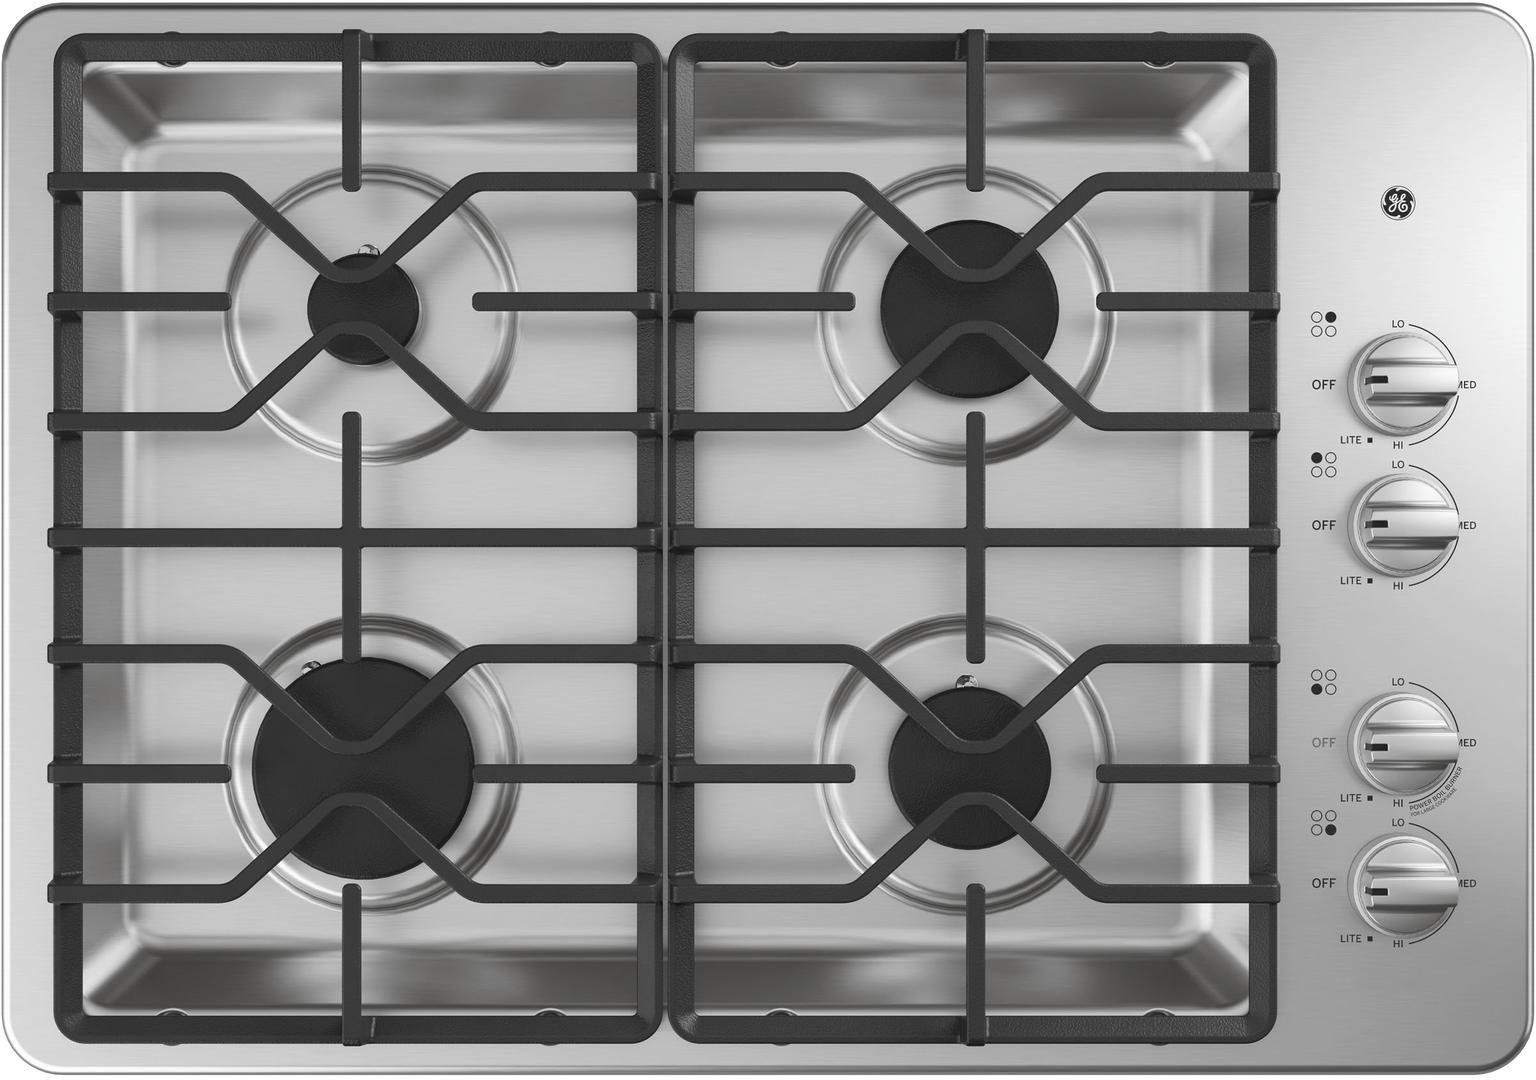 GE JGP3030SLSS 30 Inch Natural Gas Sealed Burner Style Cooktop with 4 Burners, ADA Compliant, in Stainless Steel